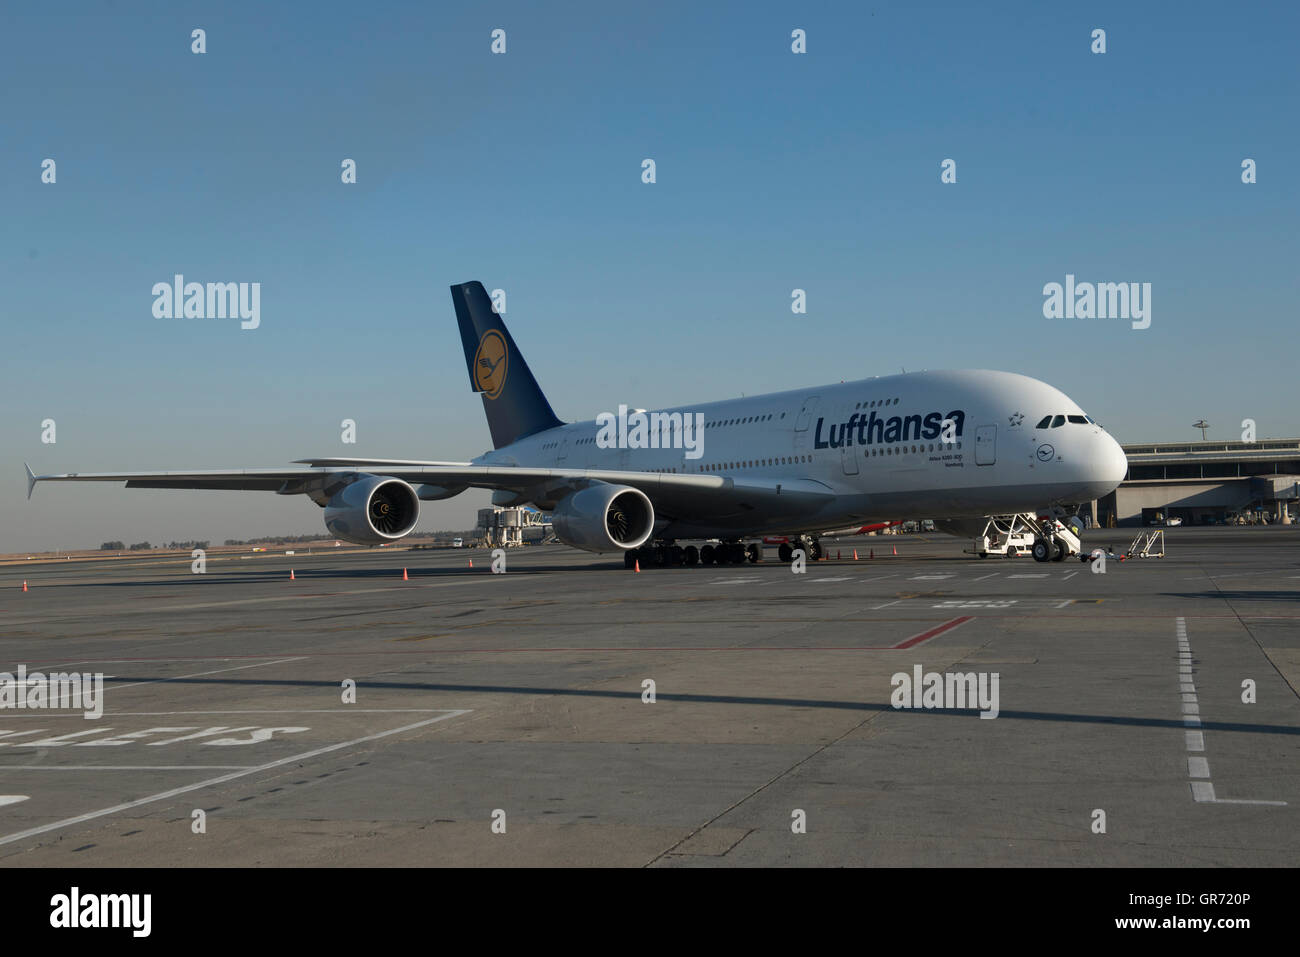 Lufthansa Airbus 300-800 at - Stock Image